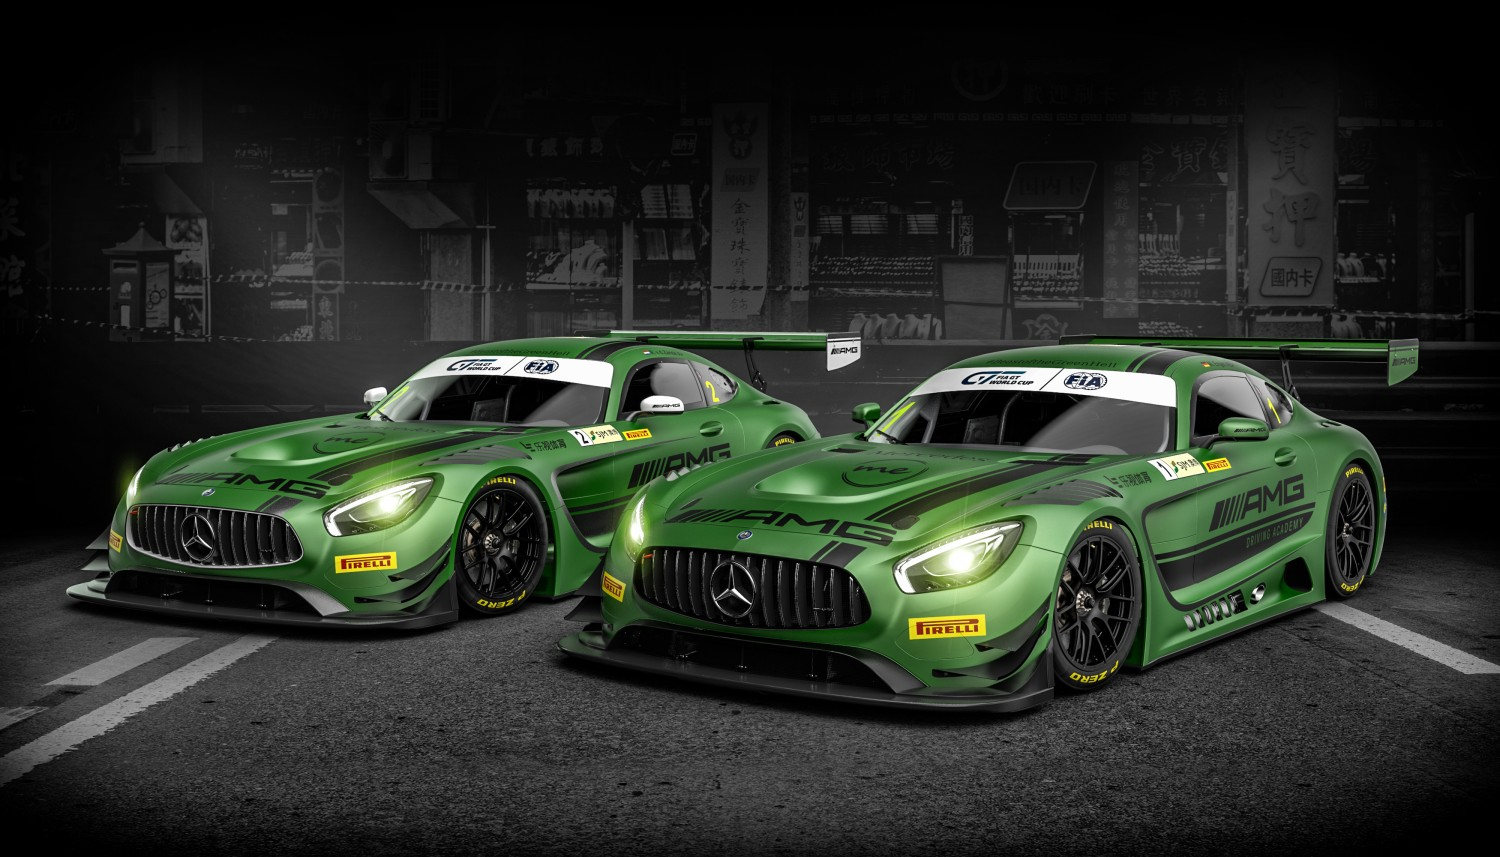 Blancpain GT Series drivers star in FIA GT World Cup